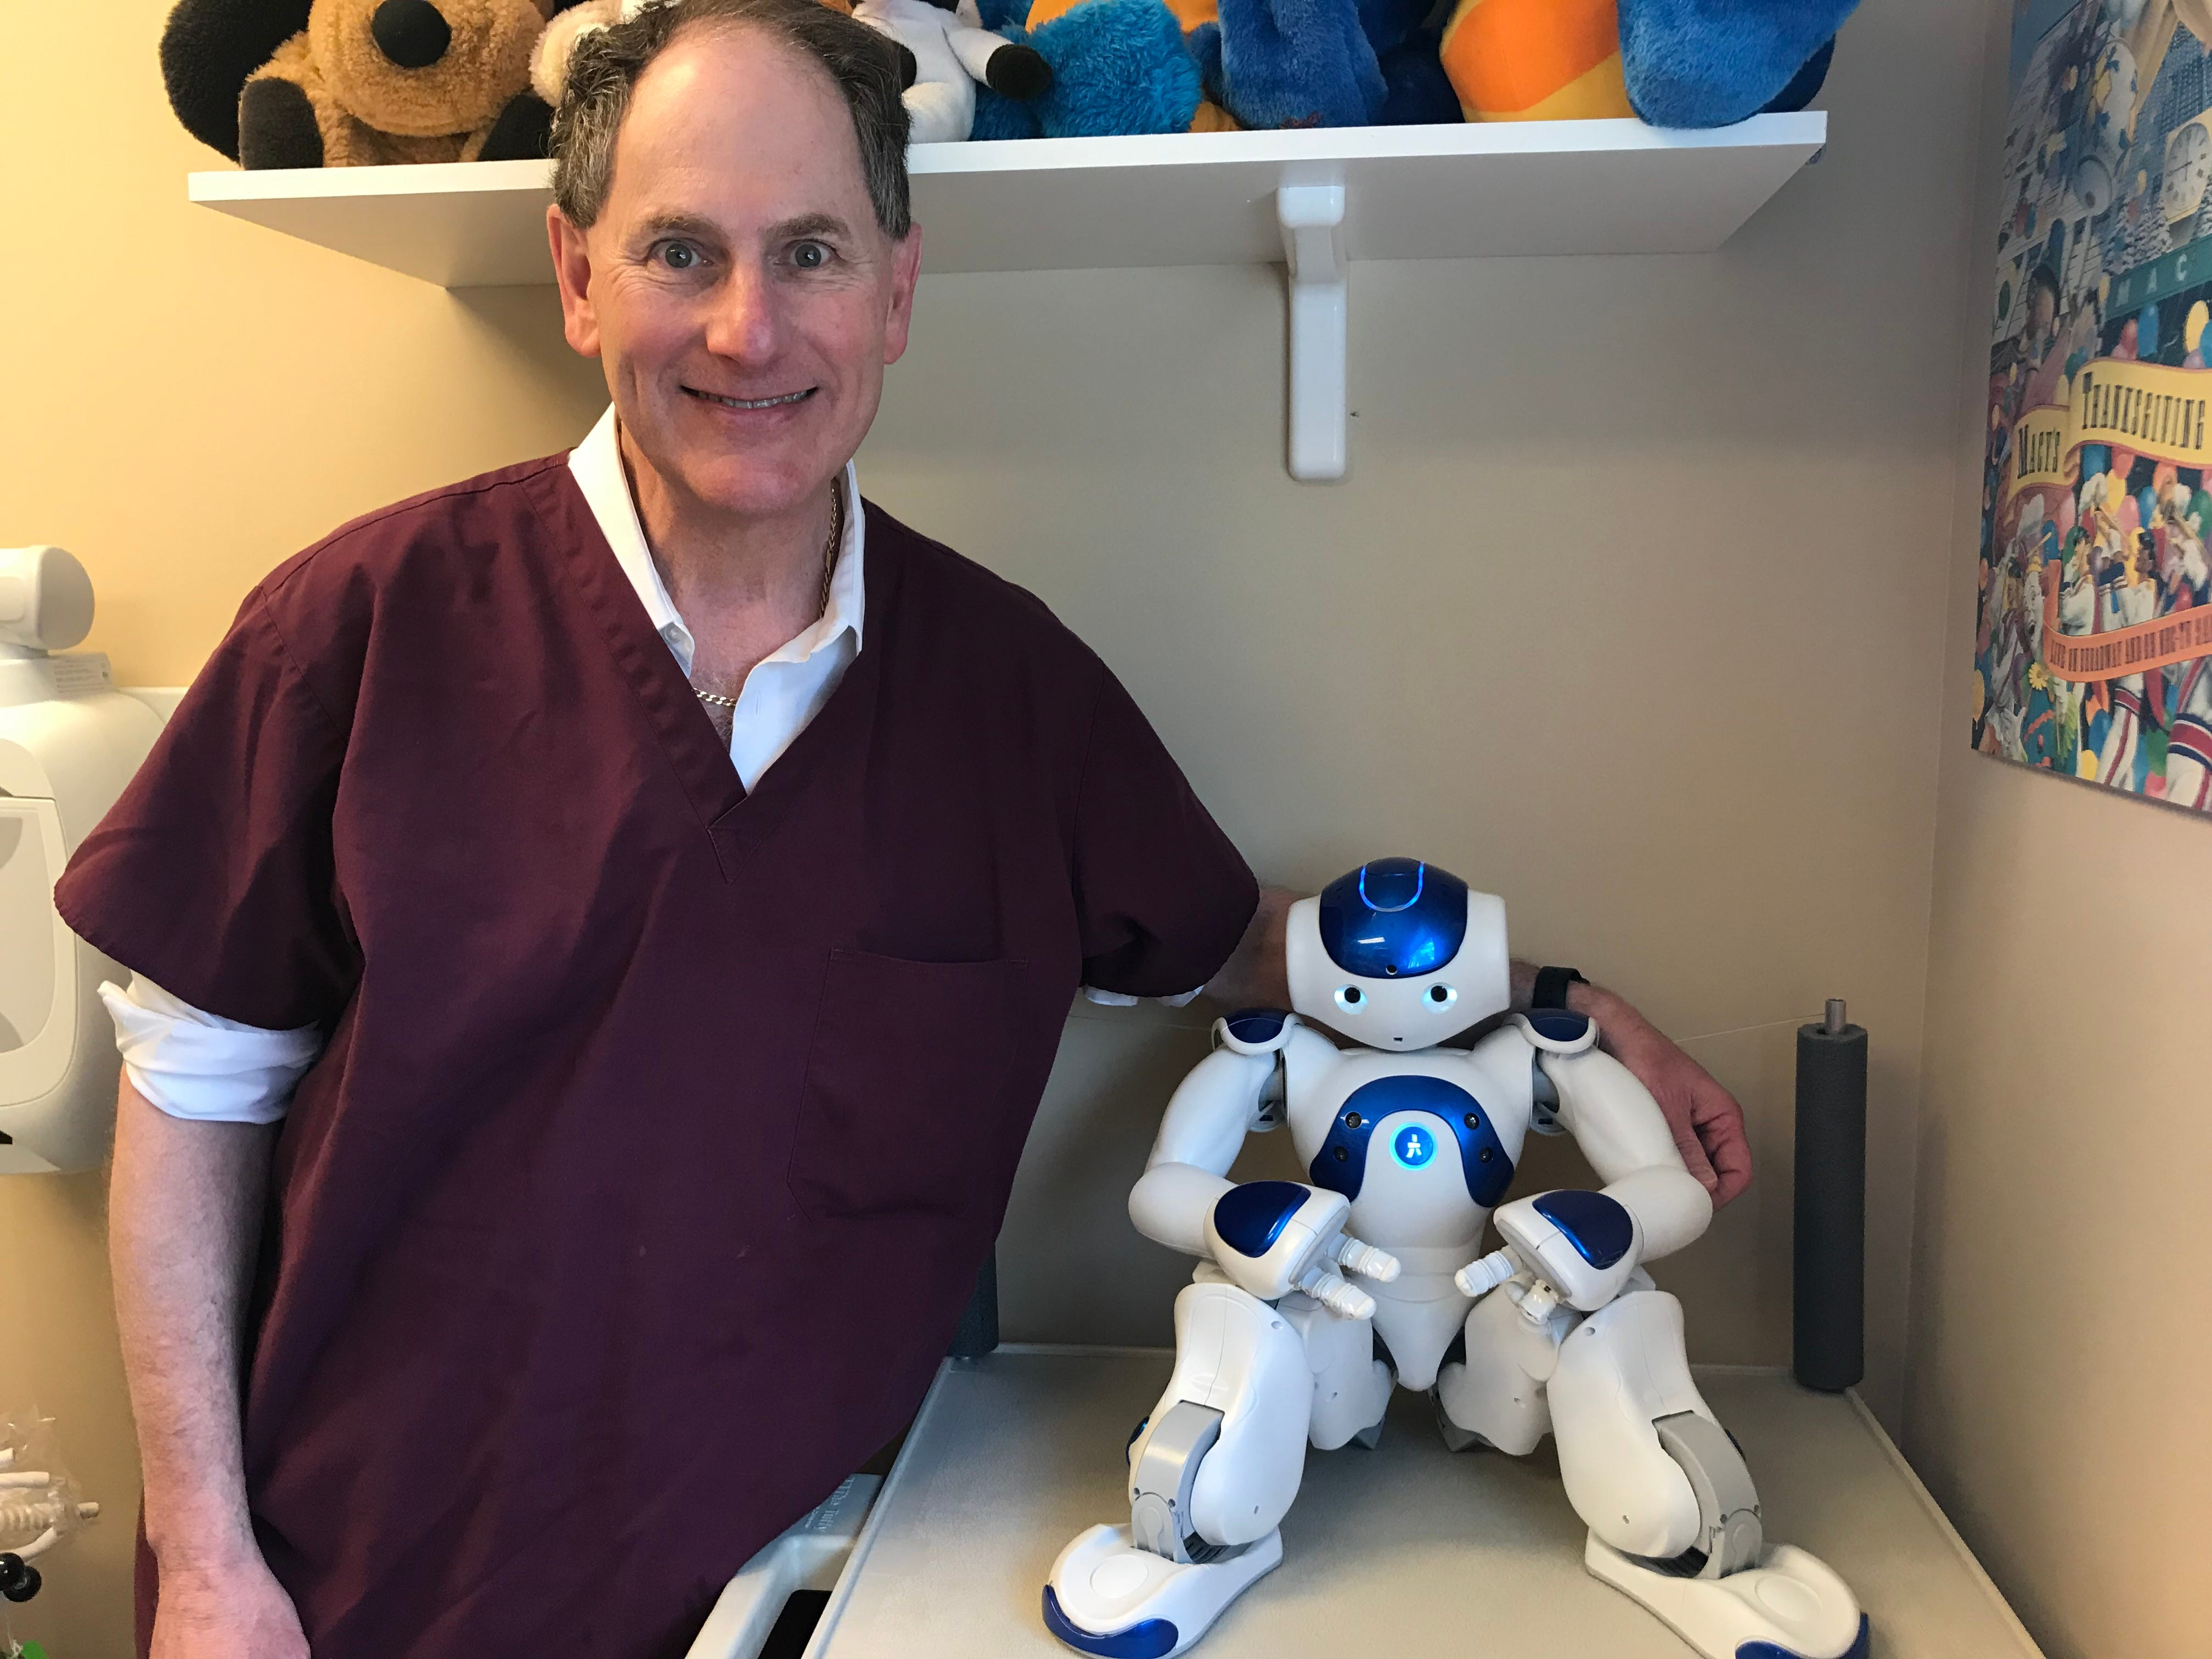 Medi the robot helps children 'Let It Go,' easing anxiety at dental visits